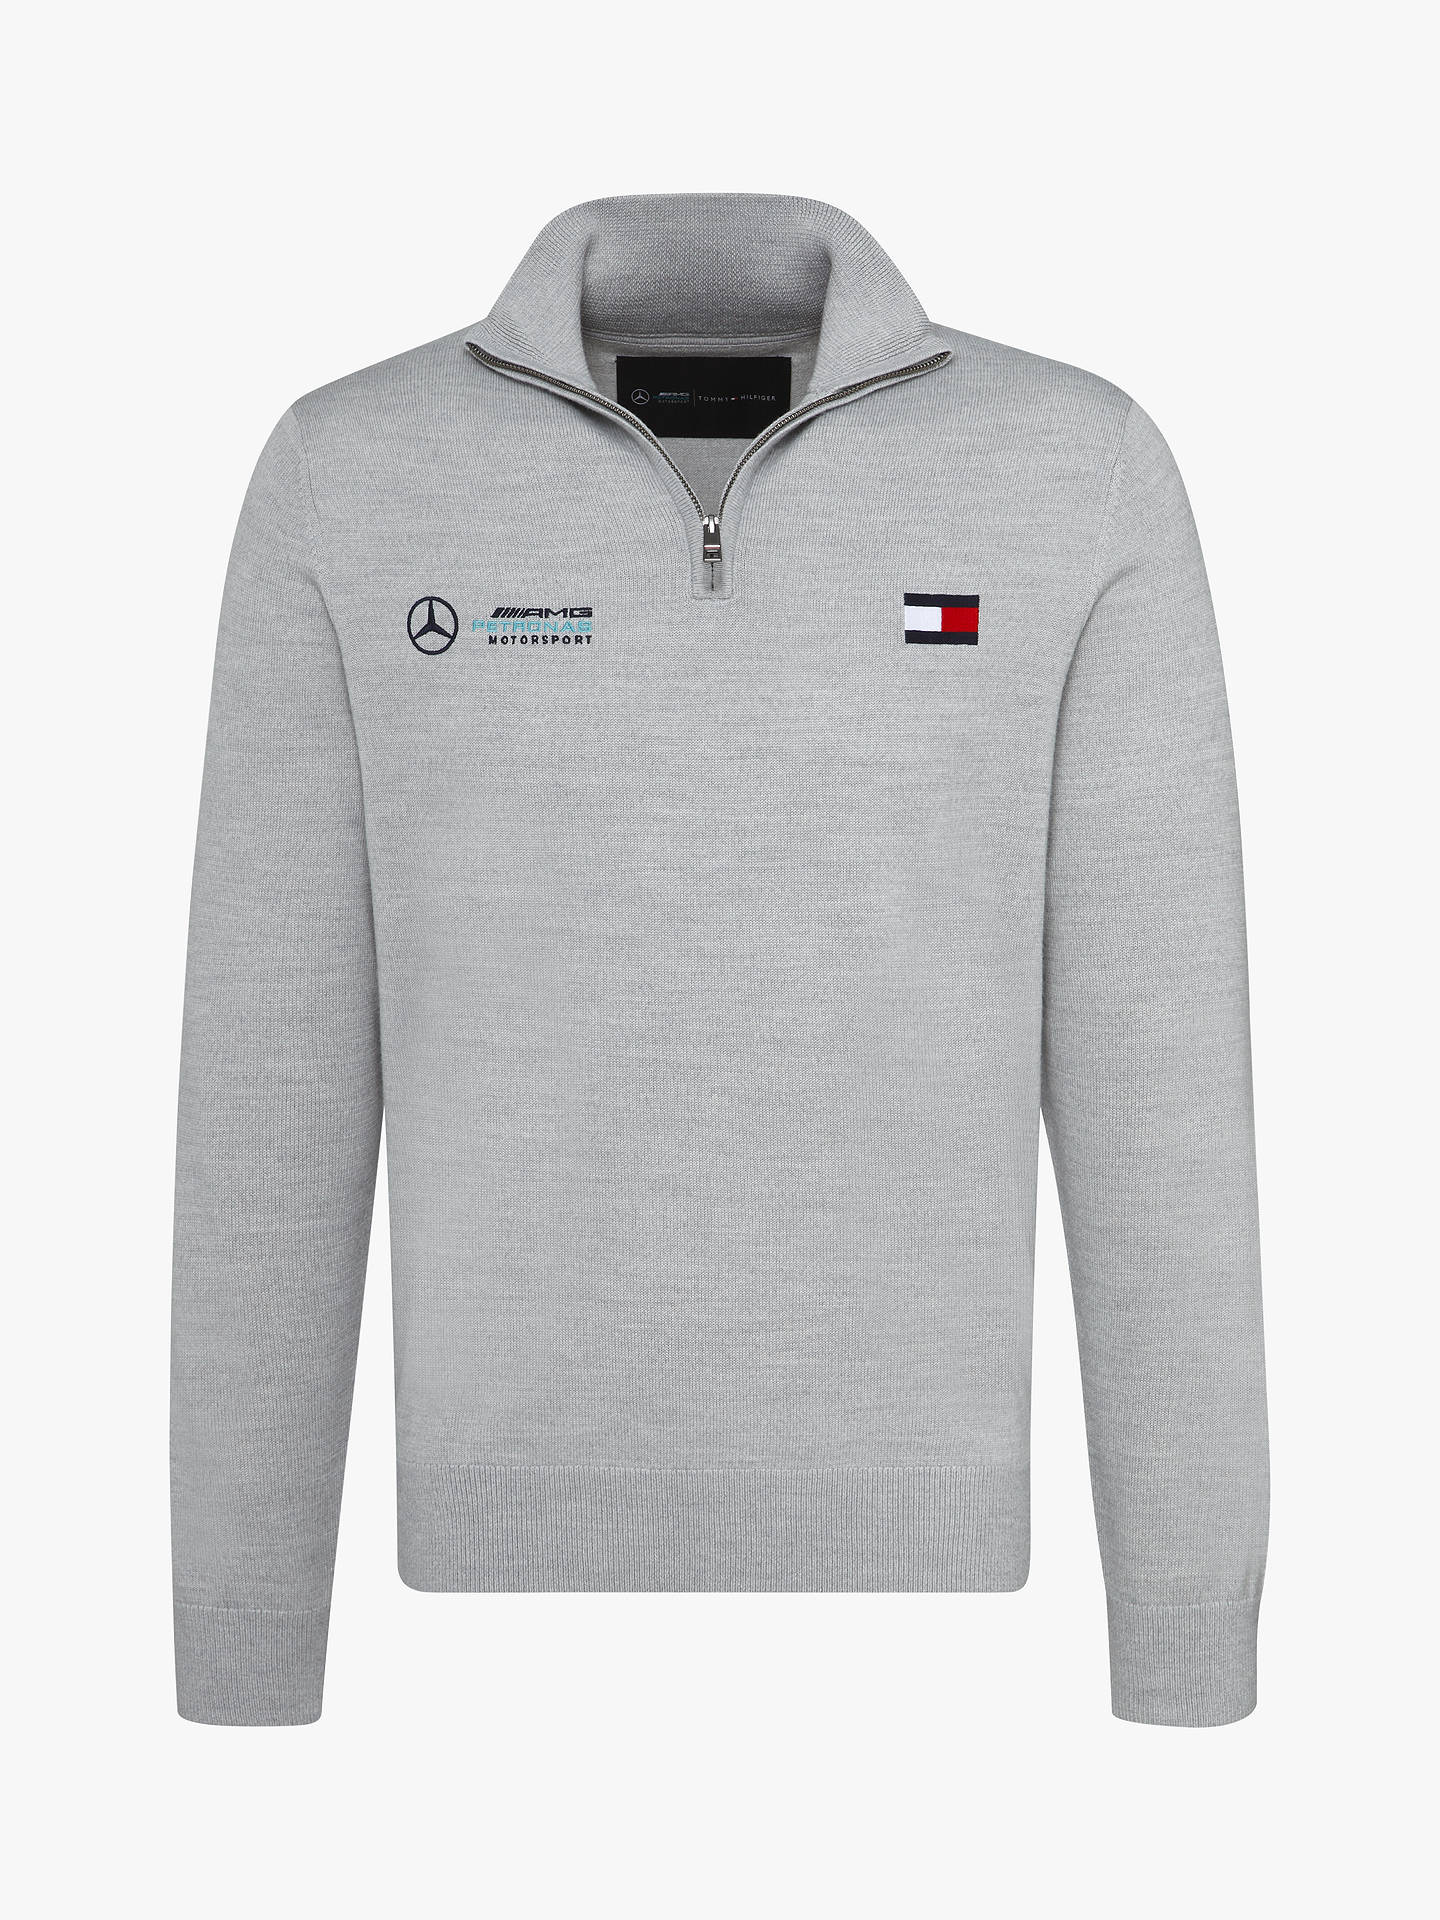 ae414dae6 Buy Tommy Hilfiger Mercedes Logo Zip Jumper, Cloud Heather, S Online at  johnlewis.